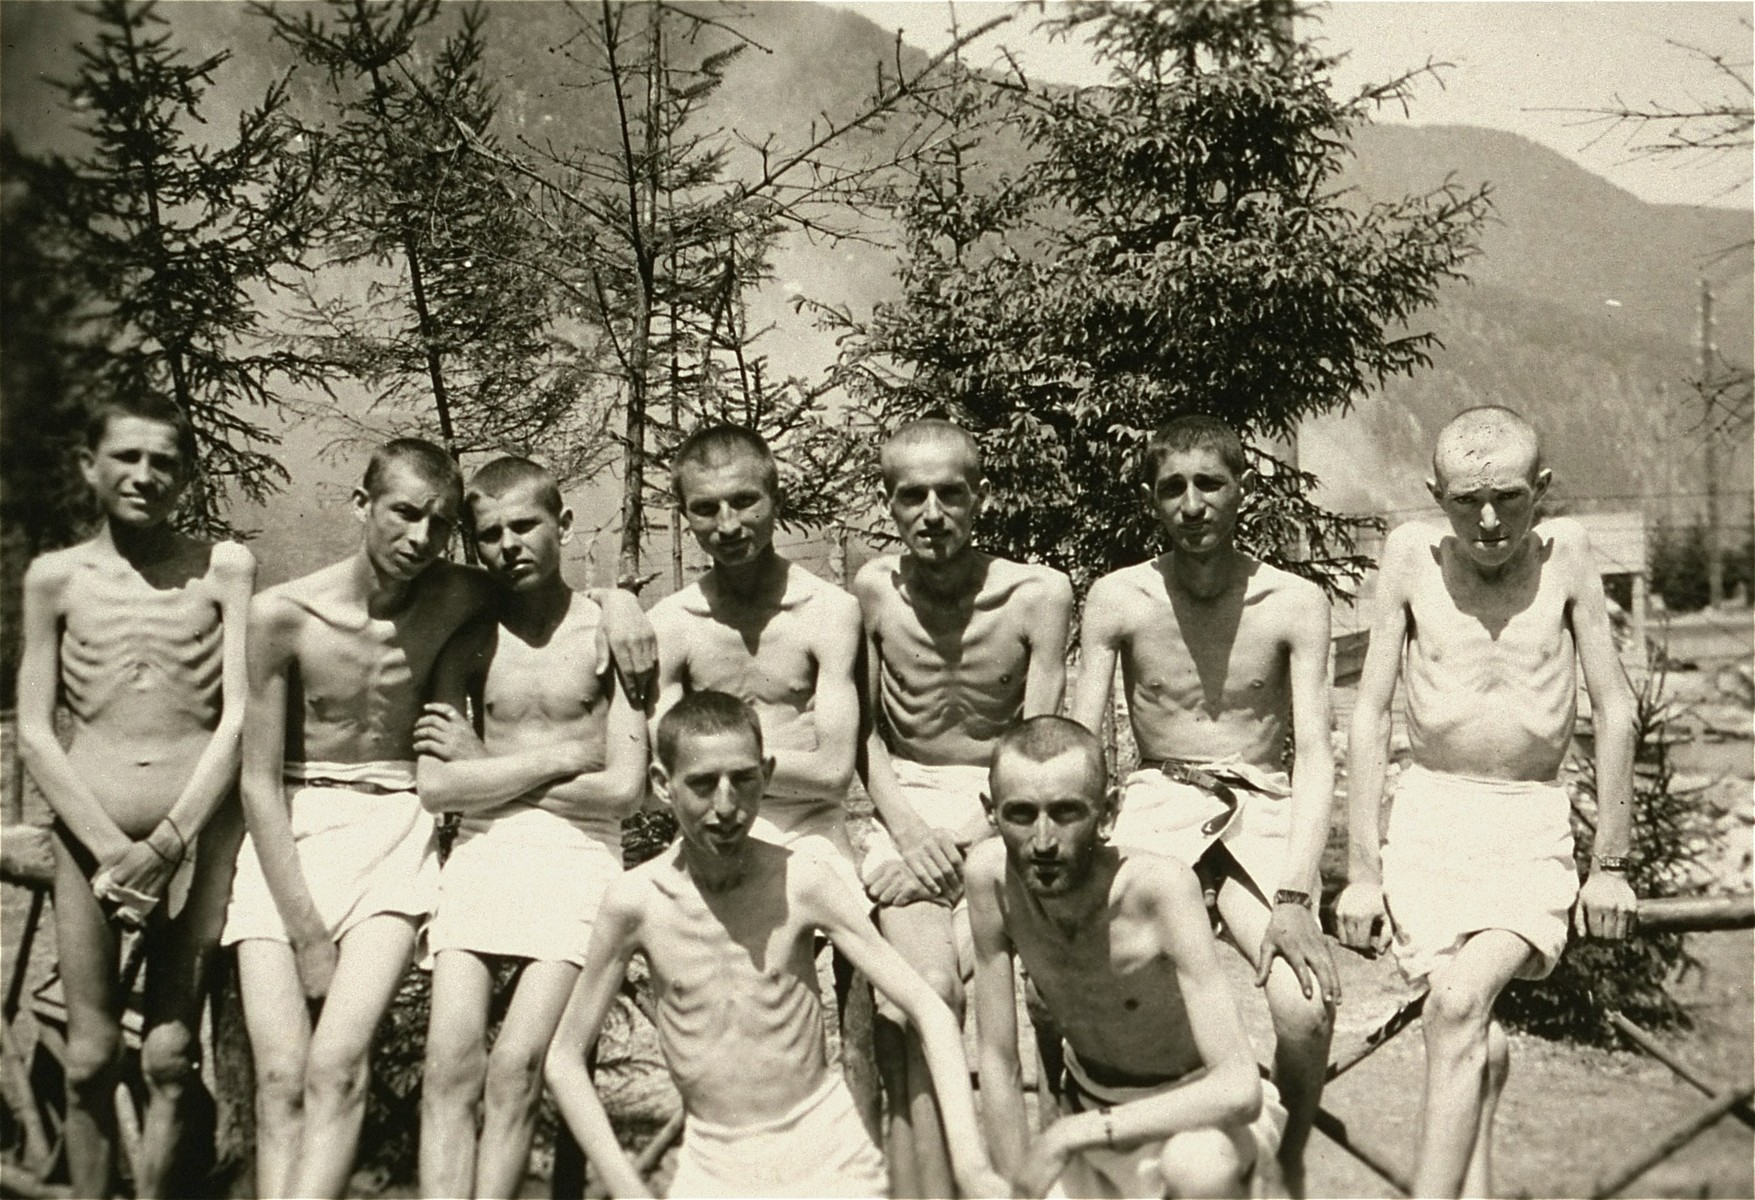 Group portrait of Ebensee survivors after having showered in the portable shower units installed in the camp by personnel of the 30th U.S. Army Field Hospital.